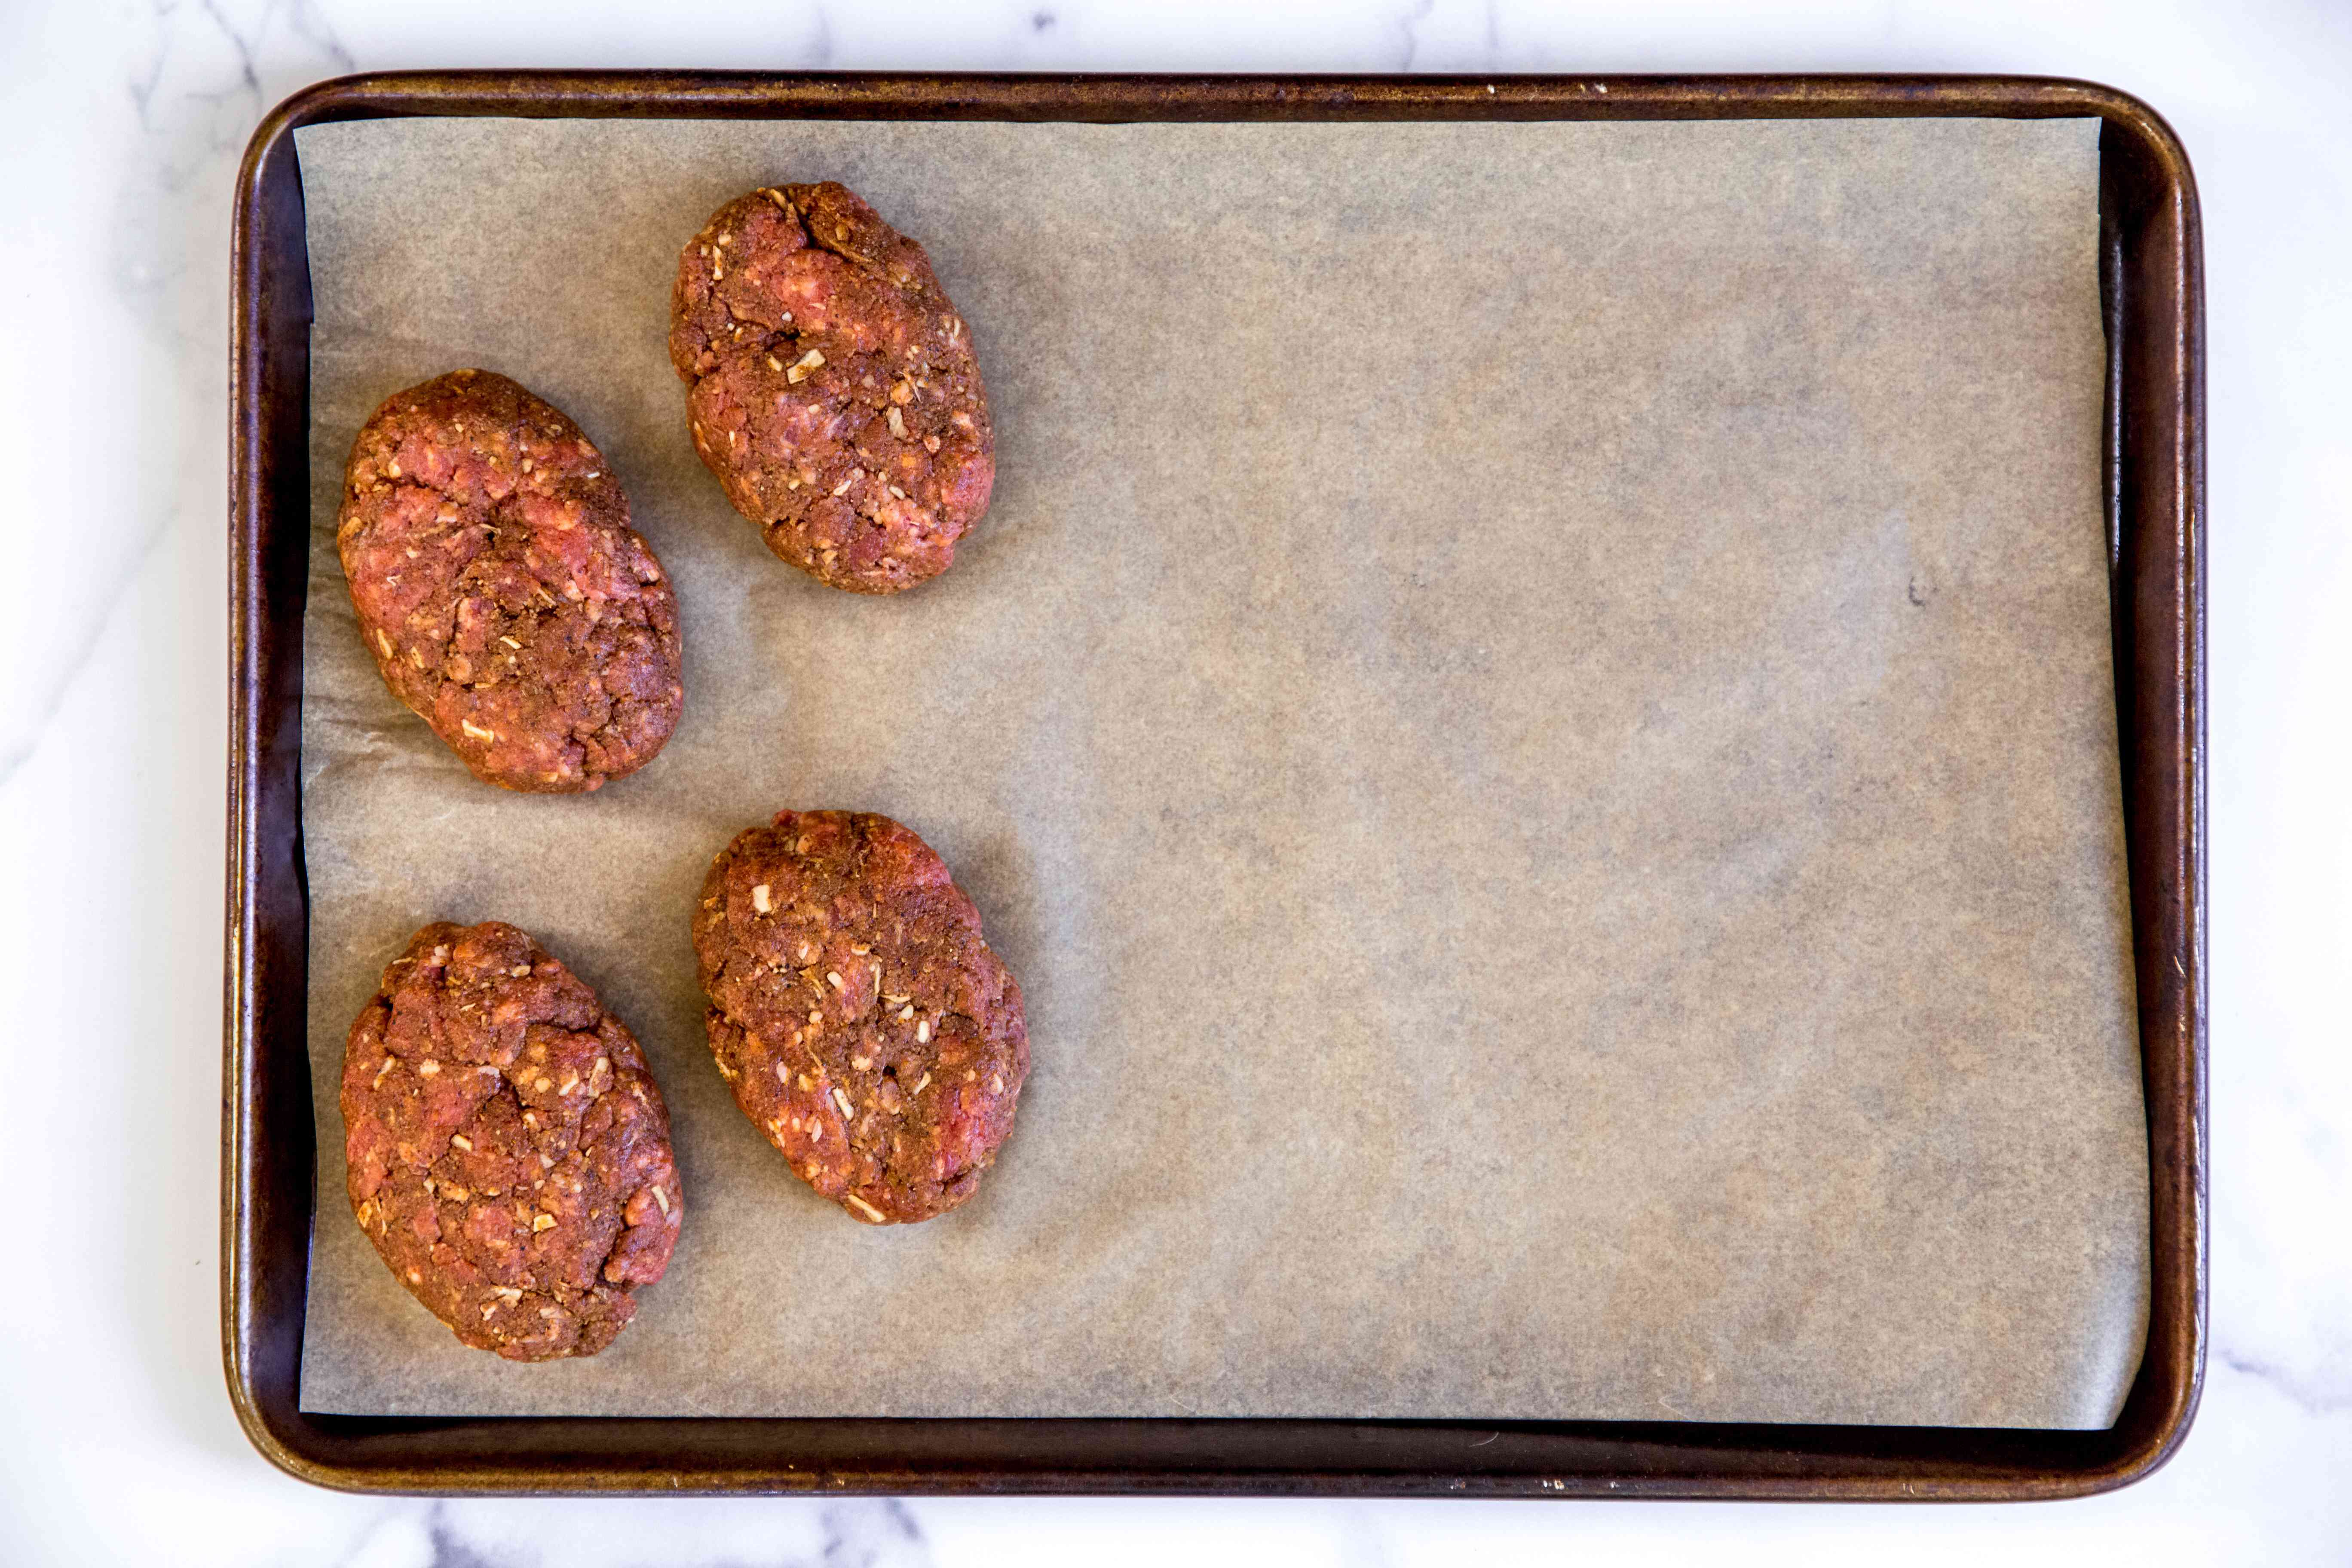 Sheet pan with mini meatloaves ready to be baked.